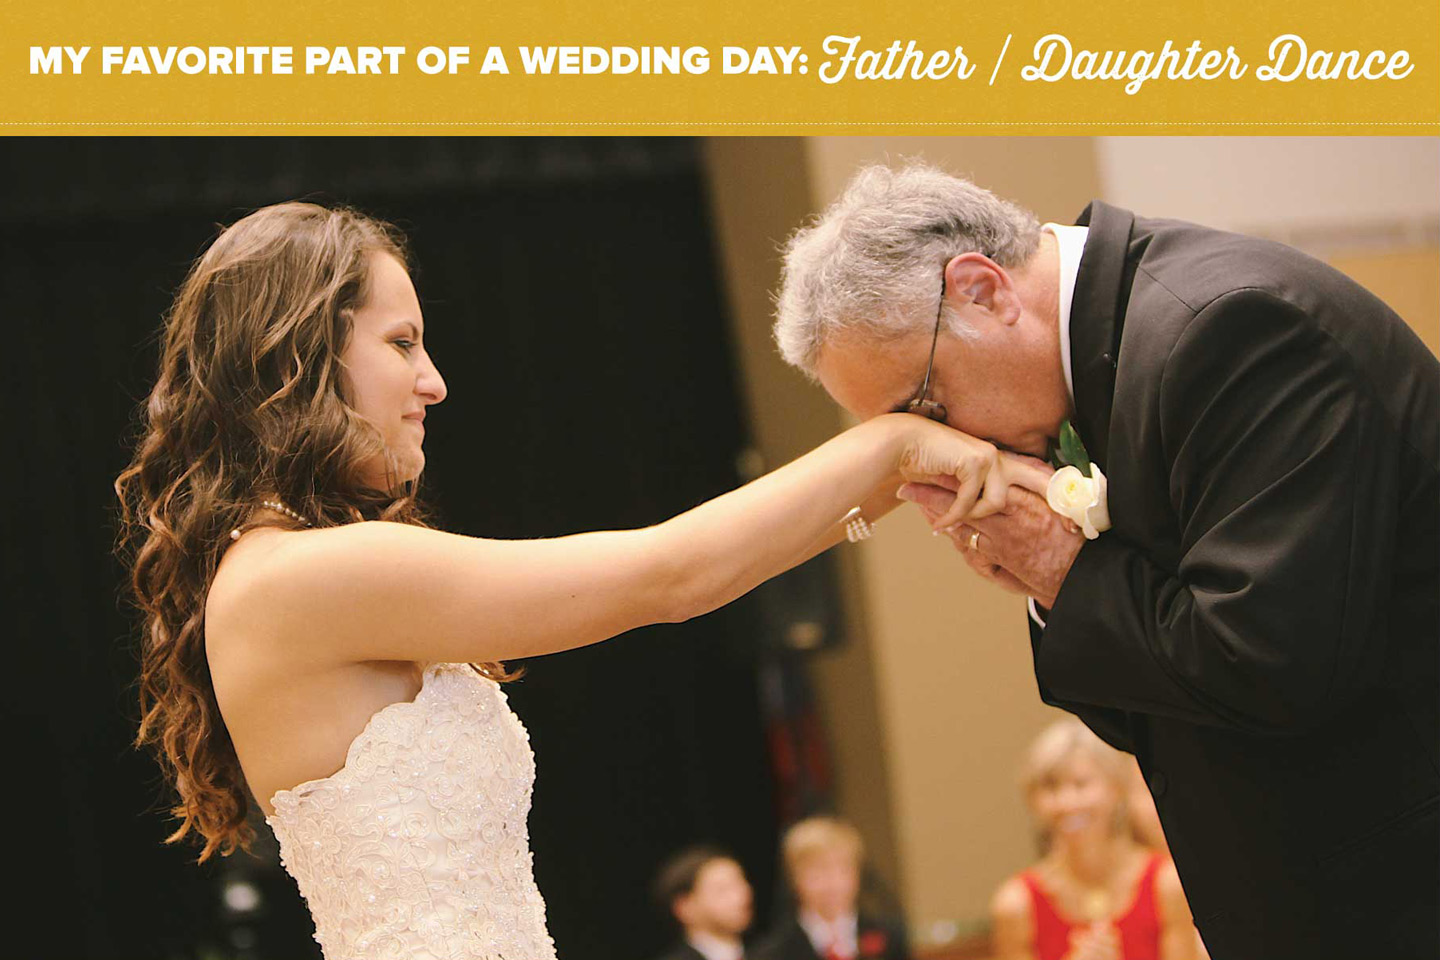 13451my favorite part of a wedding day: father/daughter dance